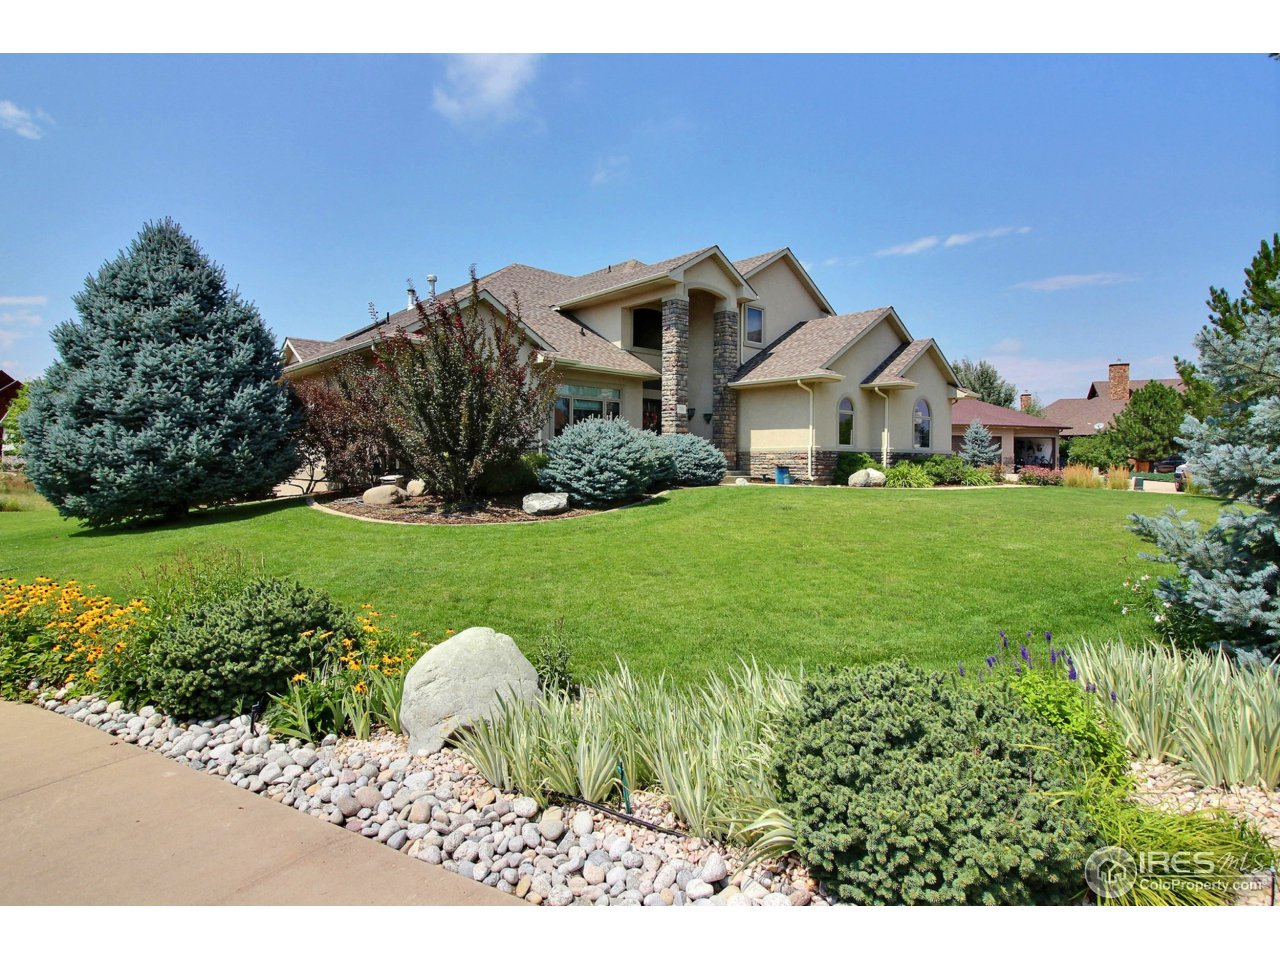 701 River View Dr, Greeley, CO 80634